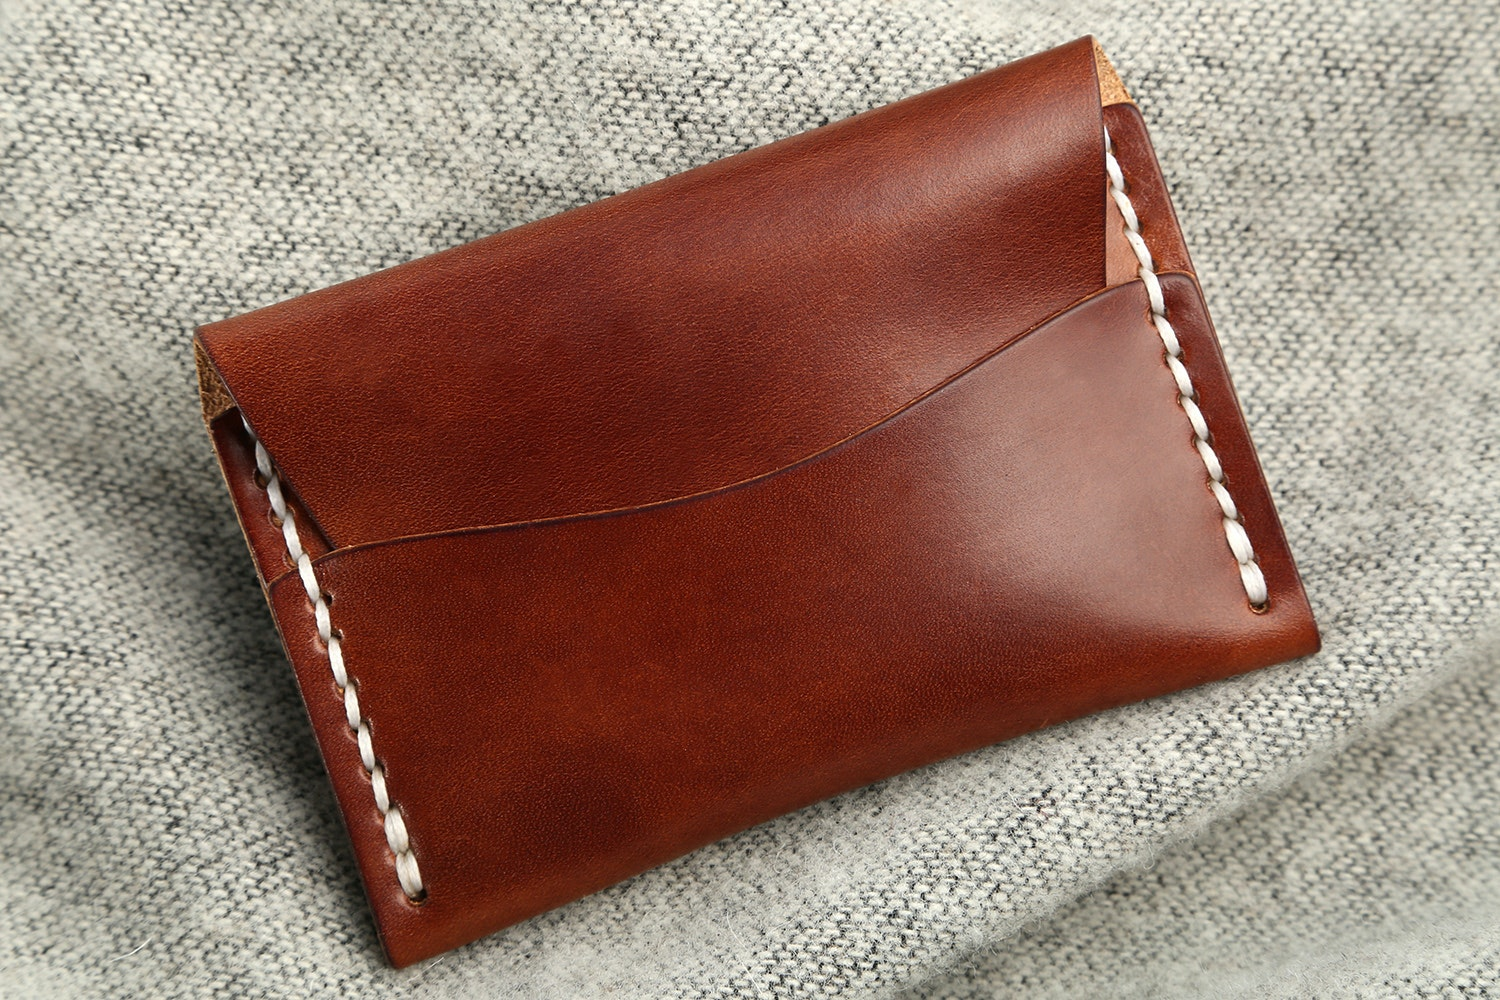 Medium Brown (from J&E Sedgwick & Co.)